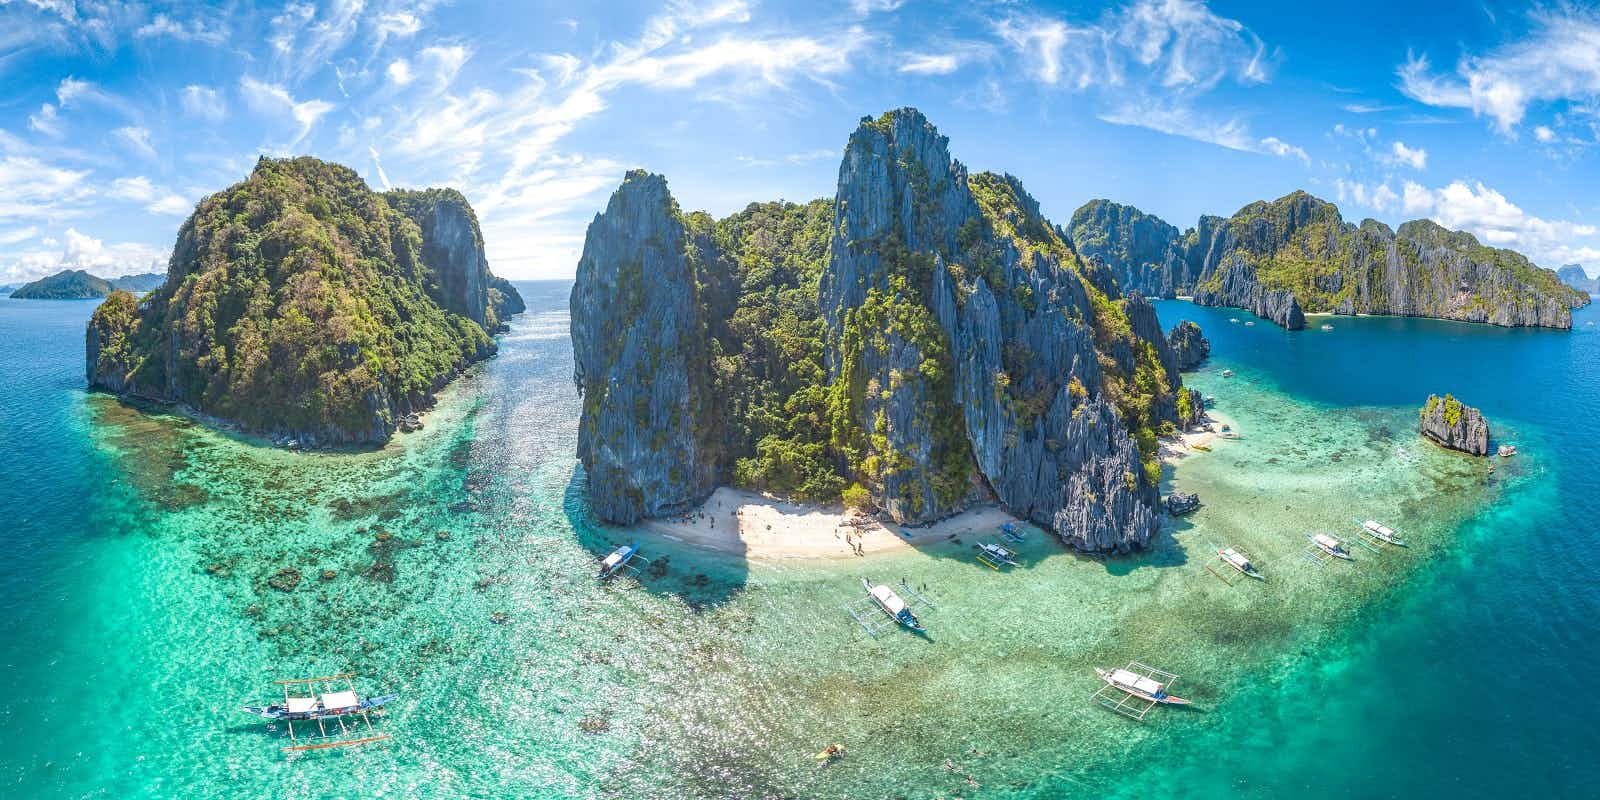 The Philippines for beginners: 7 first-timer fails to avoid on your trip